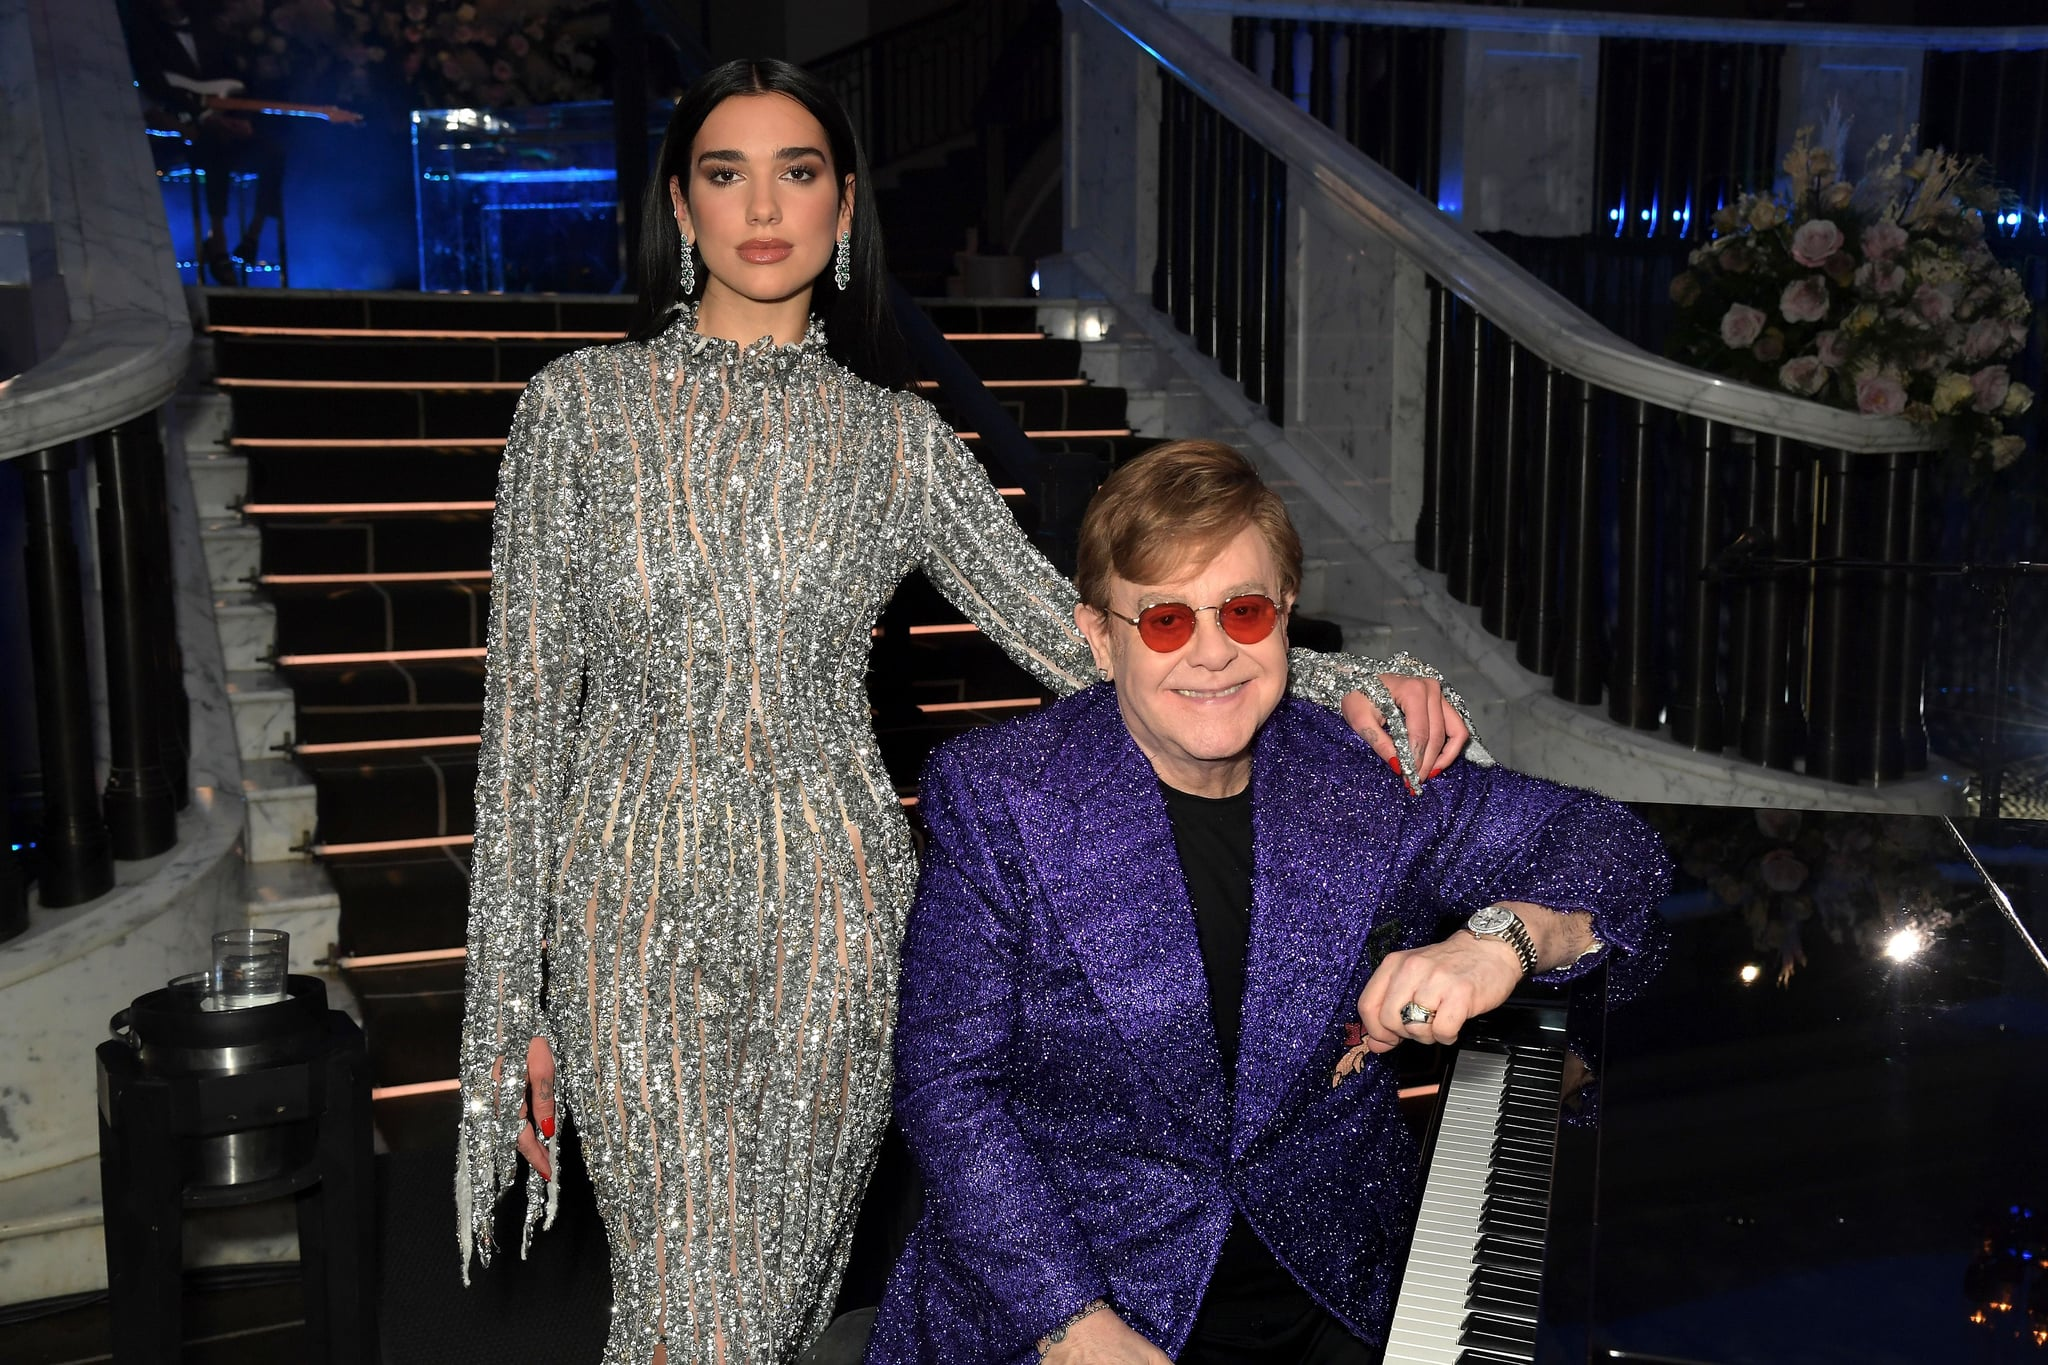 UNSPECIFIED - APRIL 25: In this image released on April 25, (L-R) Dua Lipa and Sir Elton John attend the 29th Annual Elton John AIDS Foundation Academy Awards Viewing Party on April 25, 2021. (Photo by David M. Benett/Getty Images for the Elton John AIDS Foundation)